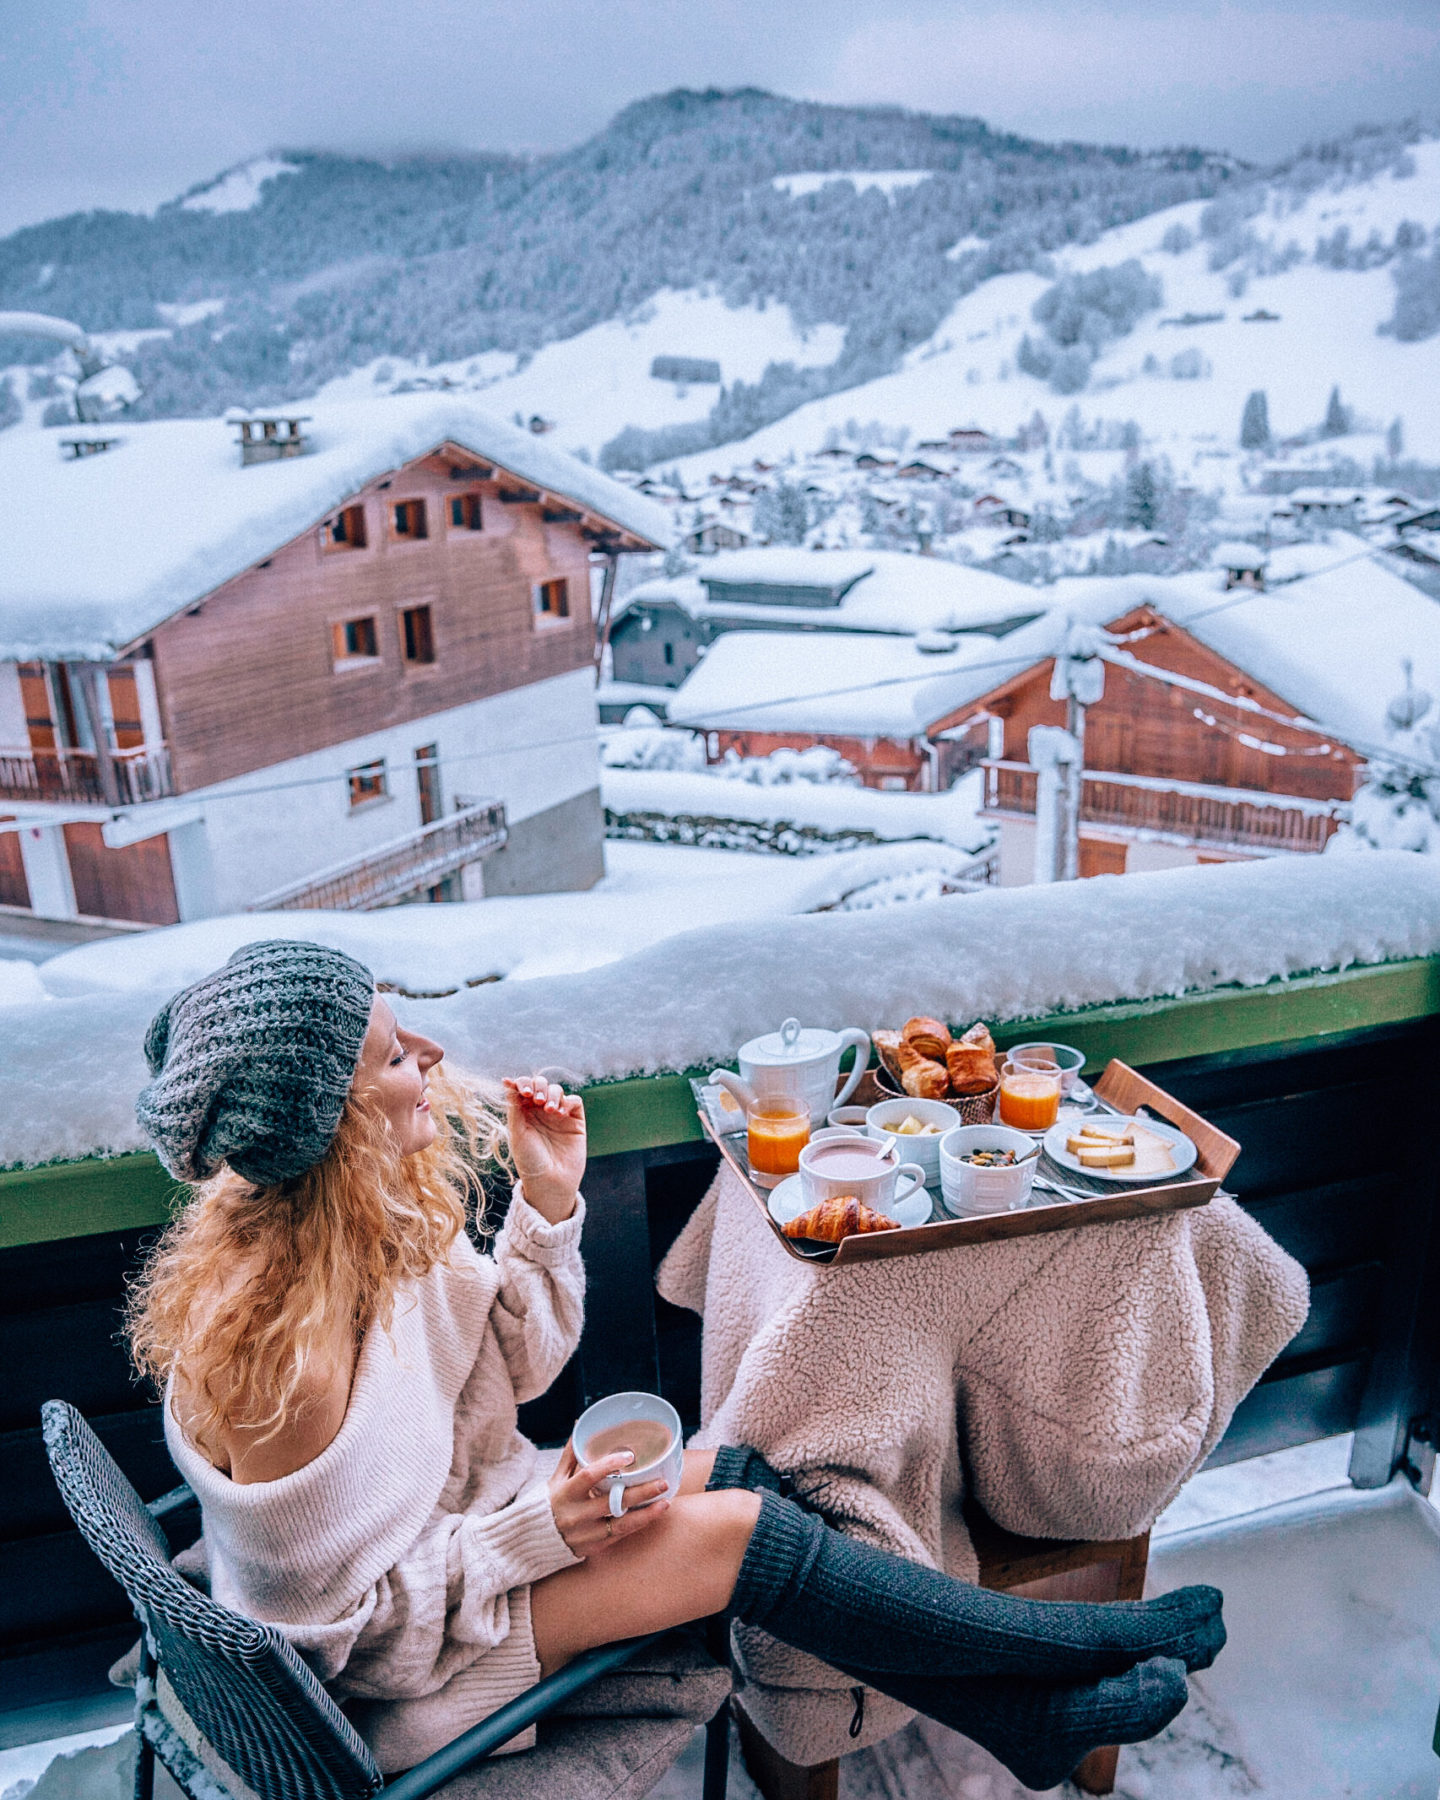 Dreamy breakfast with a mountain view from the hotel balcony